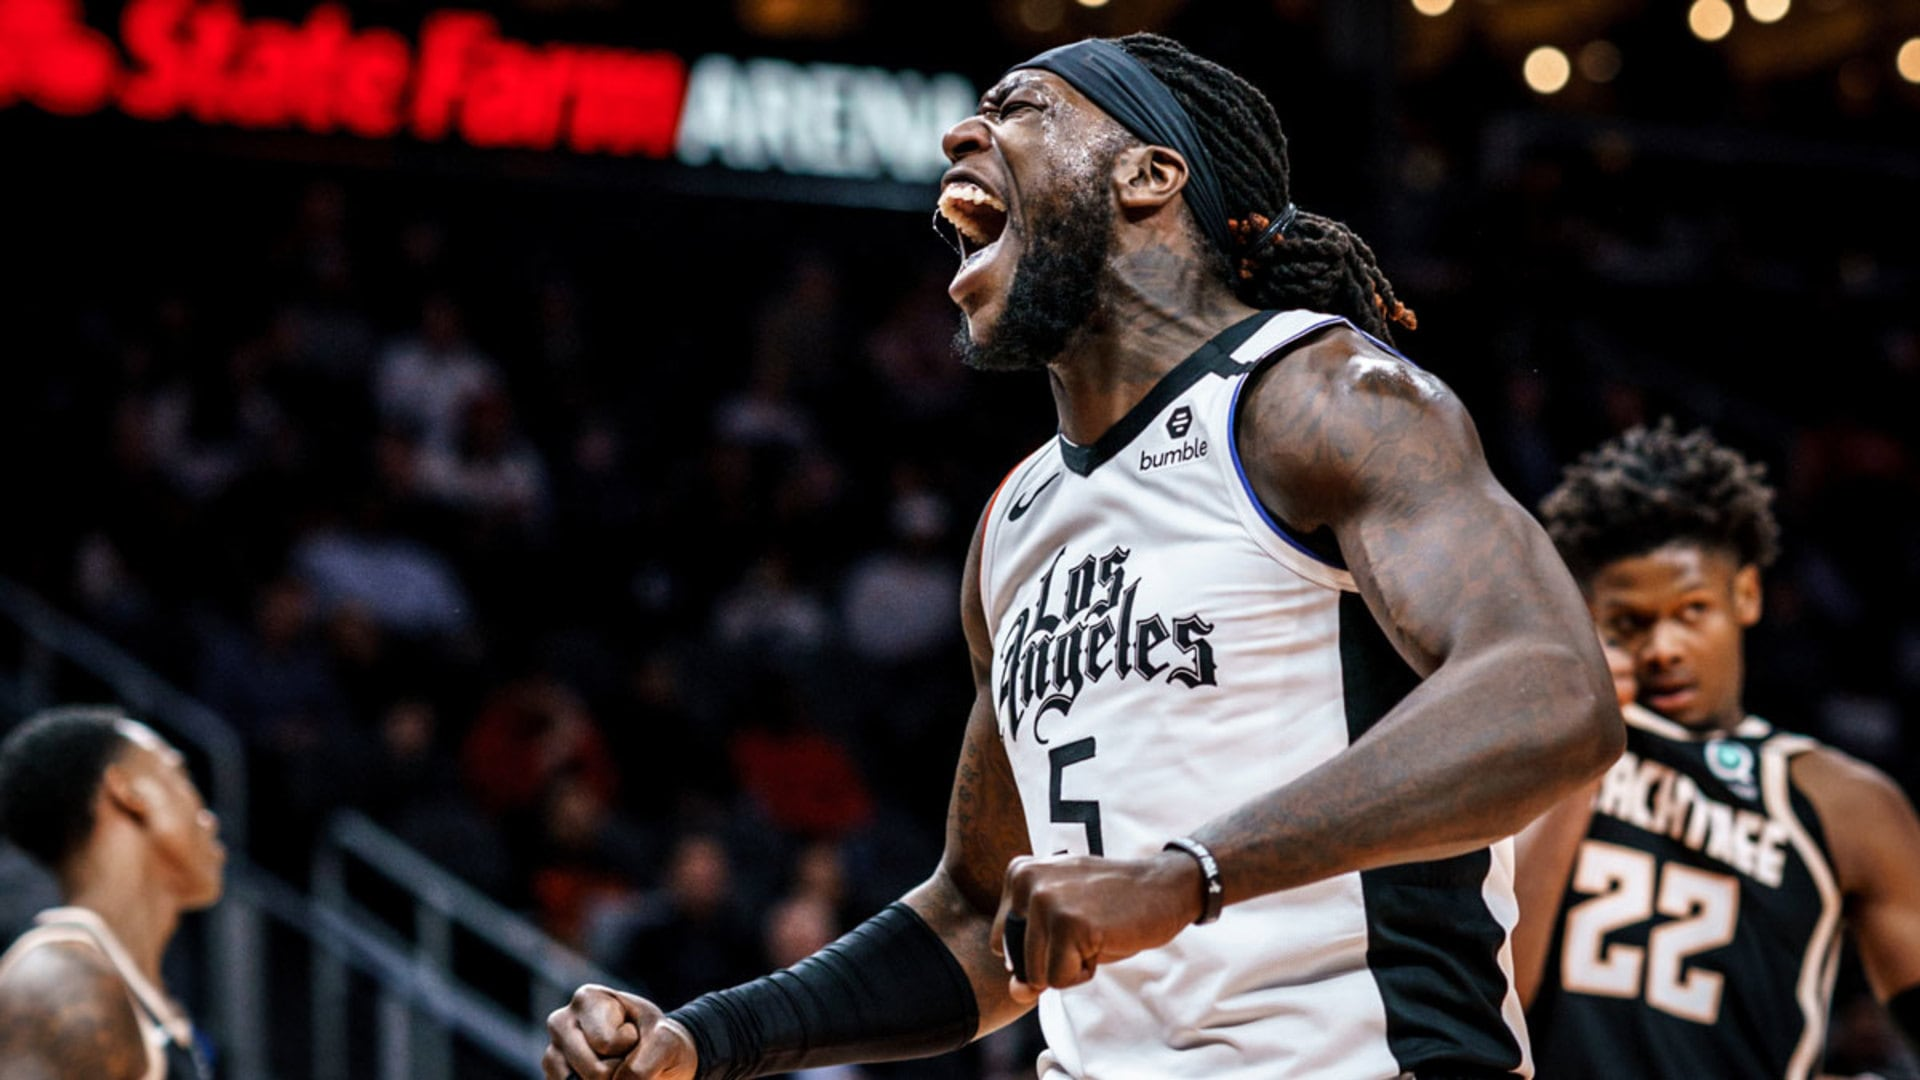 Montrezl Harrell's Top Plays of the 2019-20 Season (So Far)